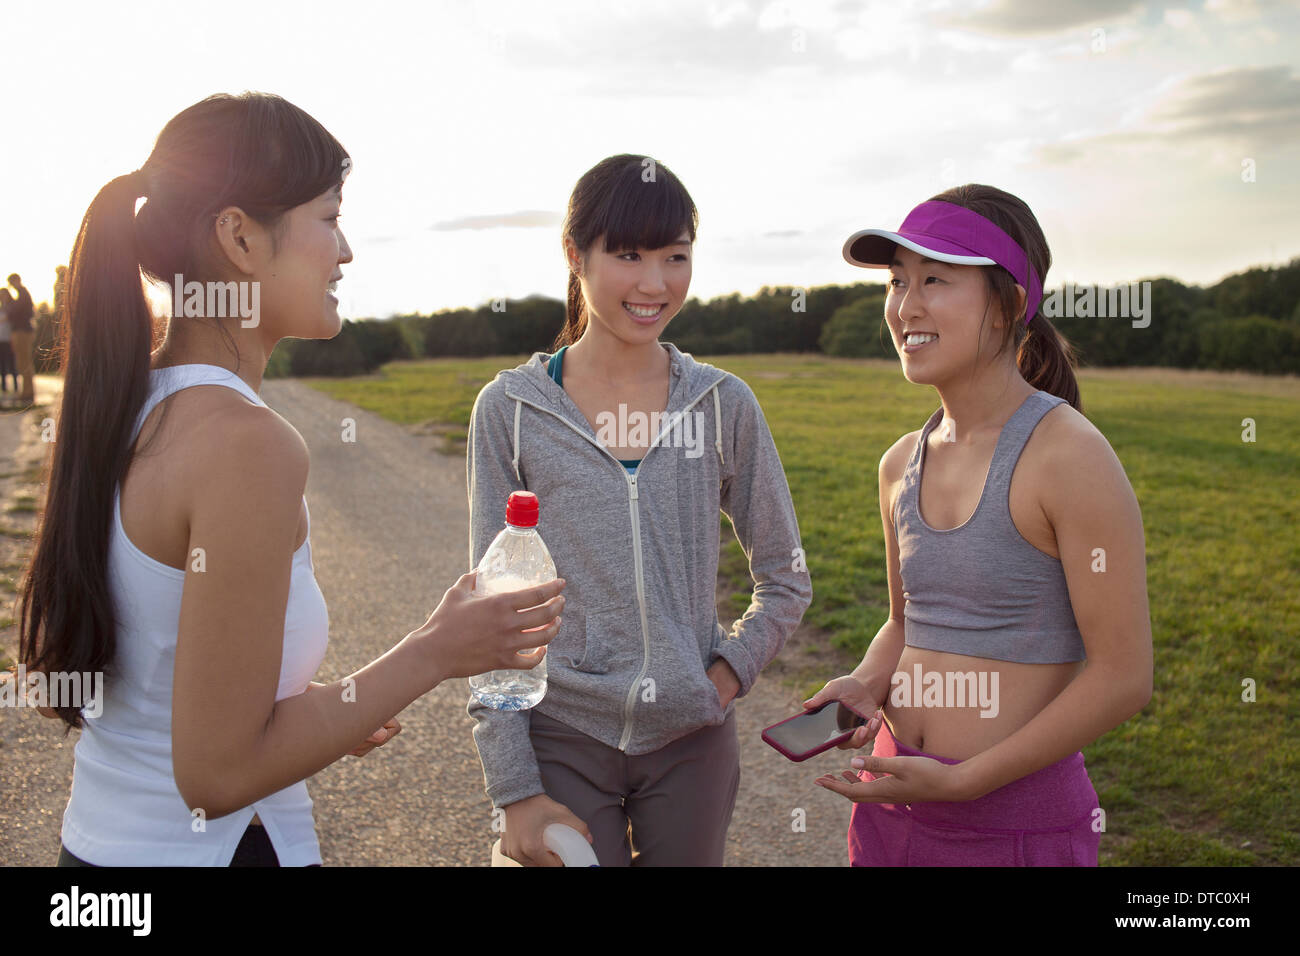 Three young female runners chatting after run - Stock Image